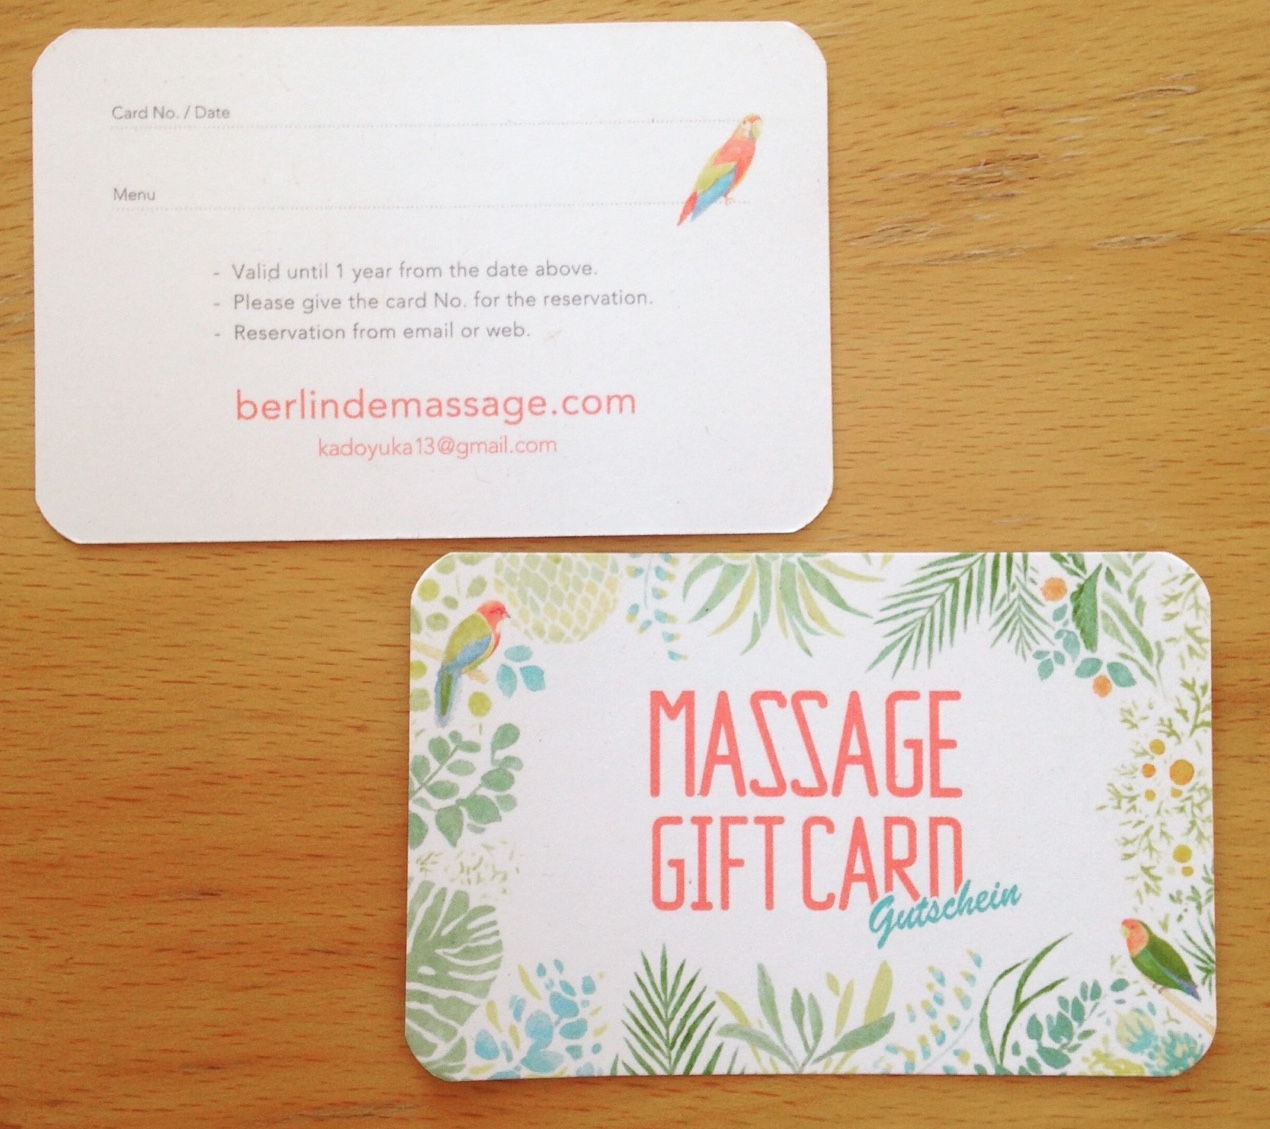 Berlin-massage-giftcard